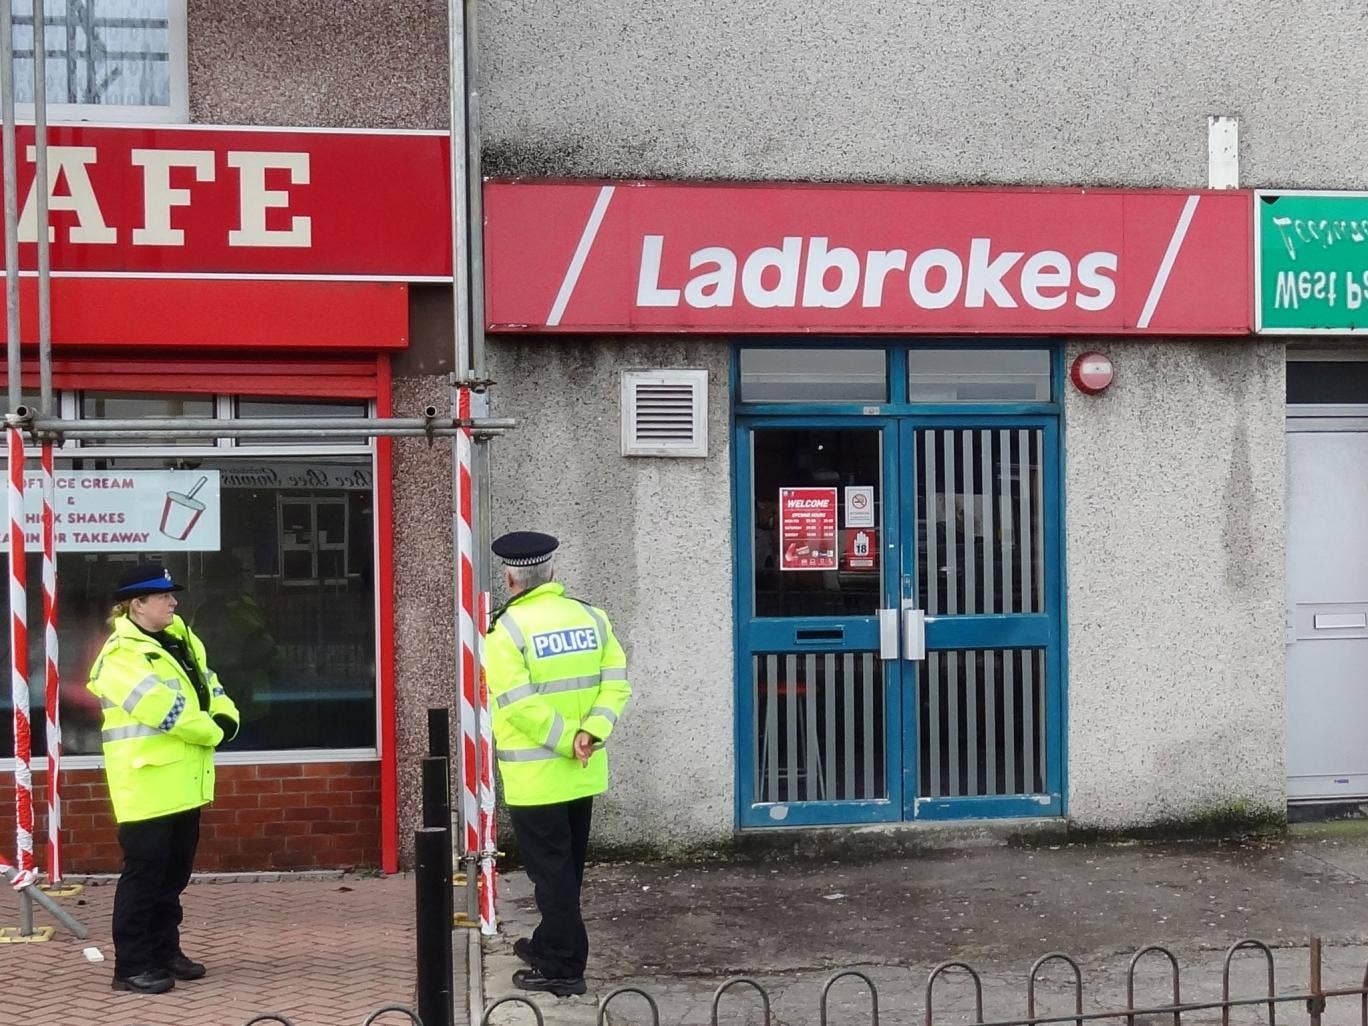 Crime scene: Alan Levers died at a Ladbrokes in Plymouth